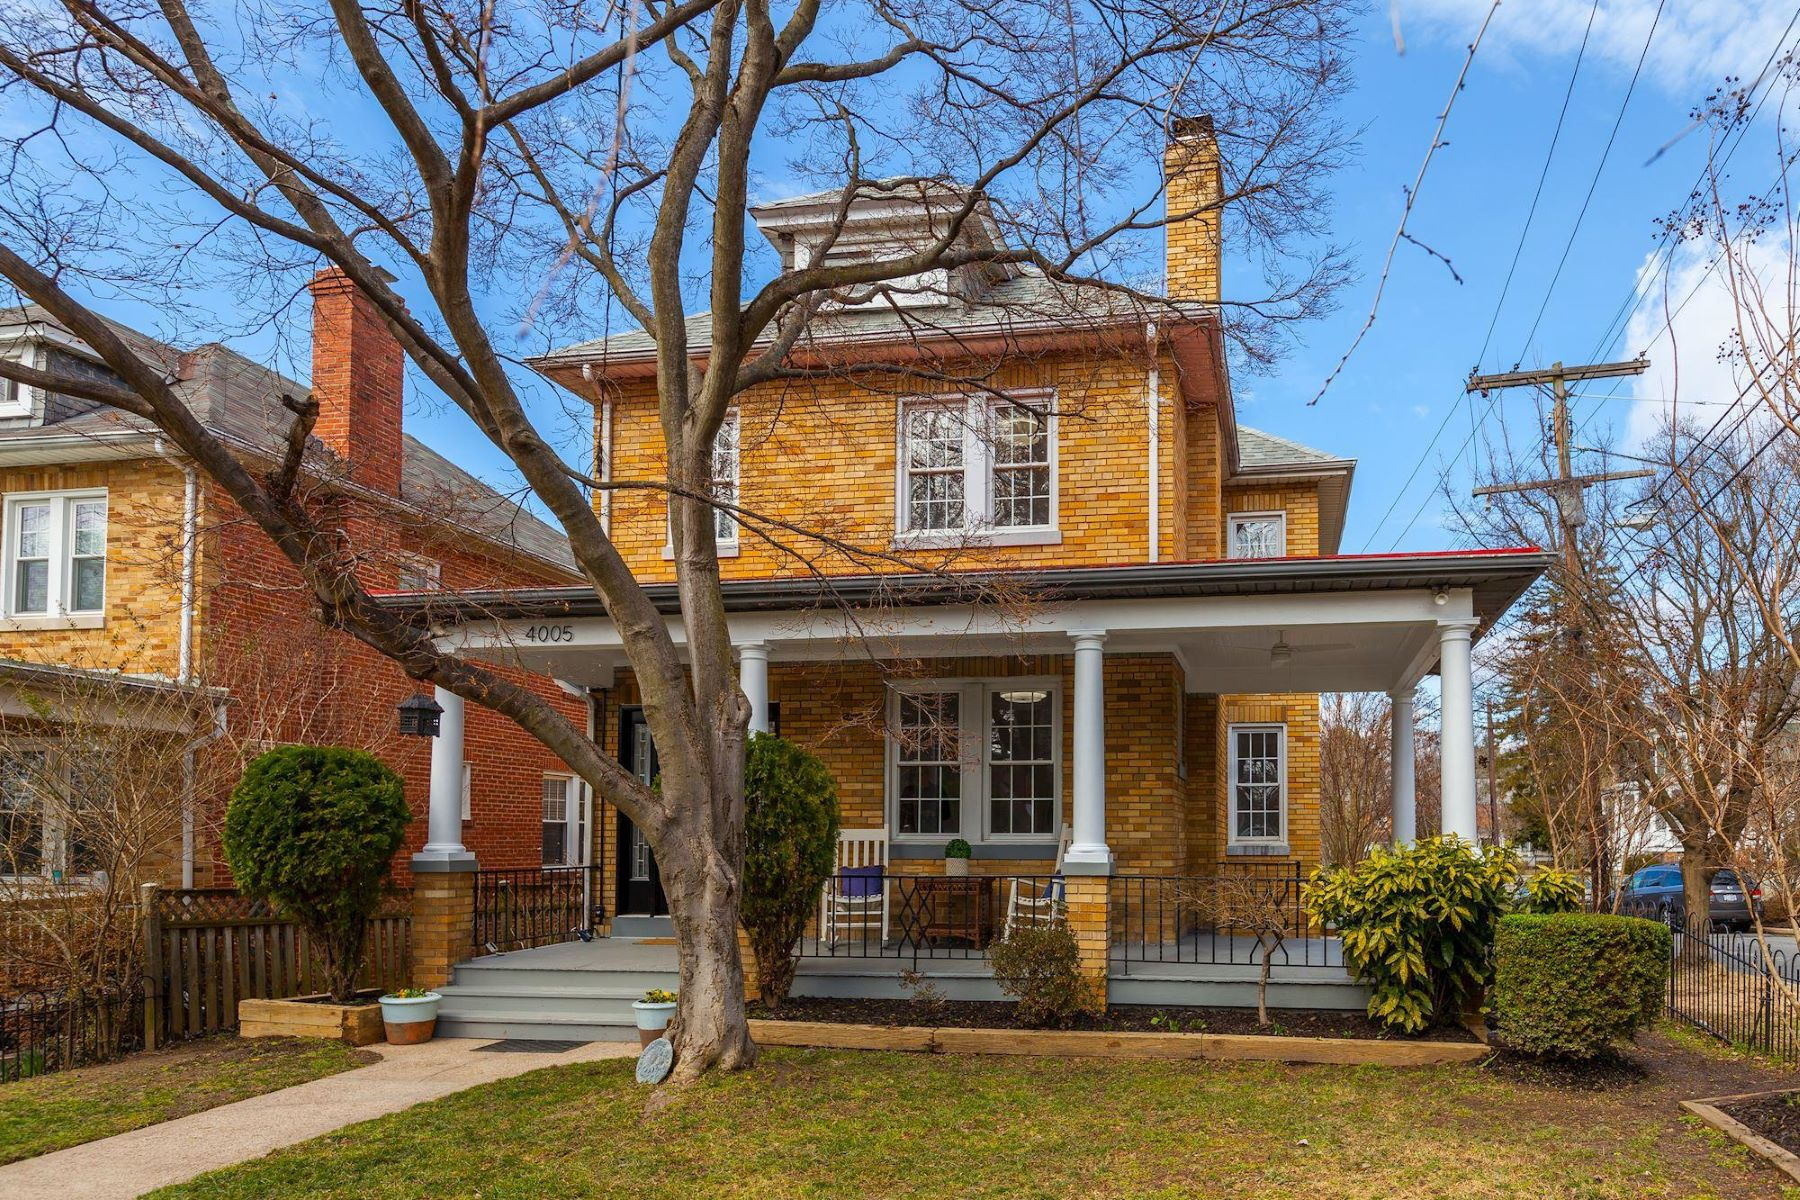 Single Family Home for Sale at 4005 Fessenden St NW 4005 Fessenden St NW Washington, District Of Columbia 20016 United States